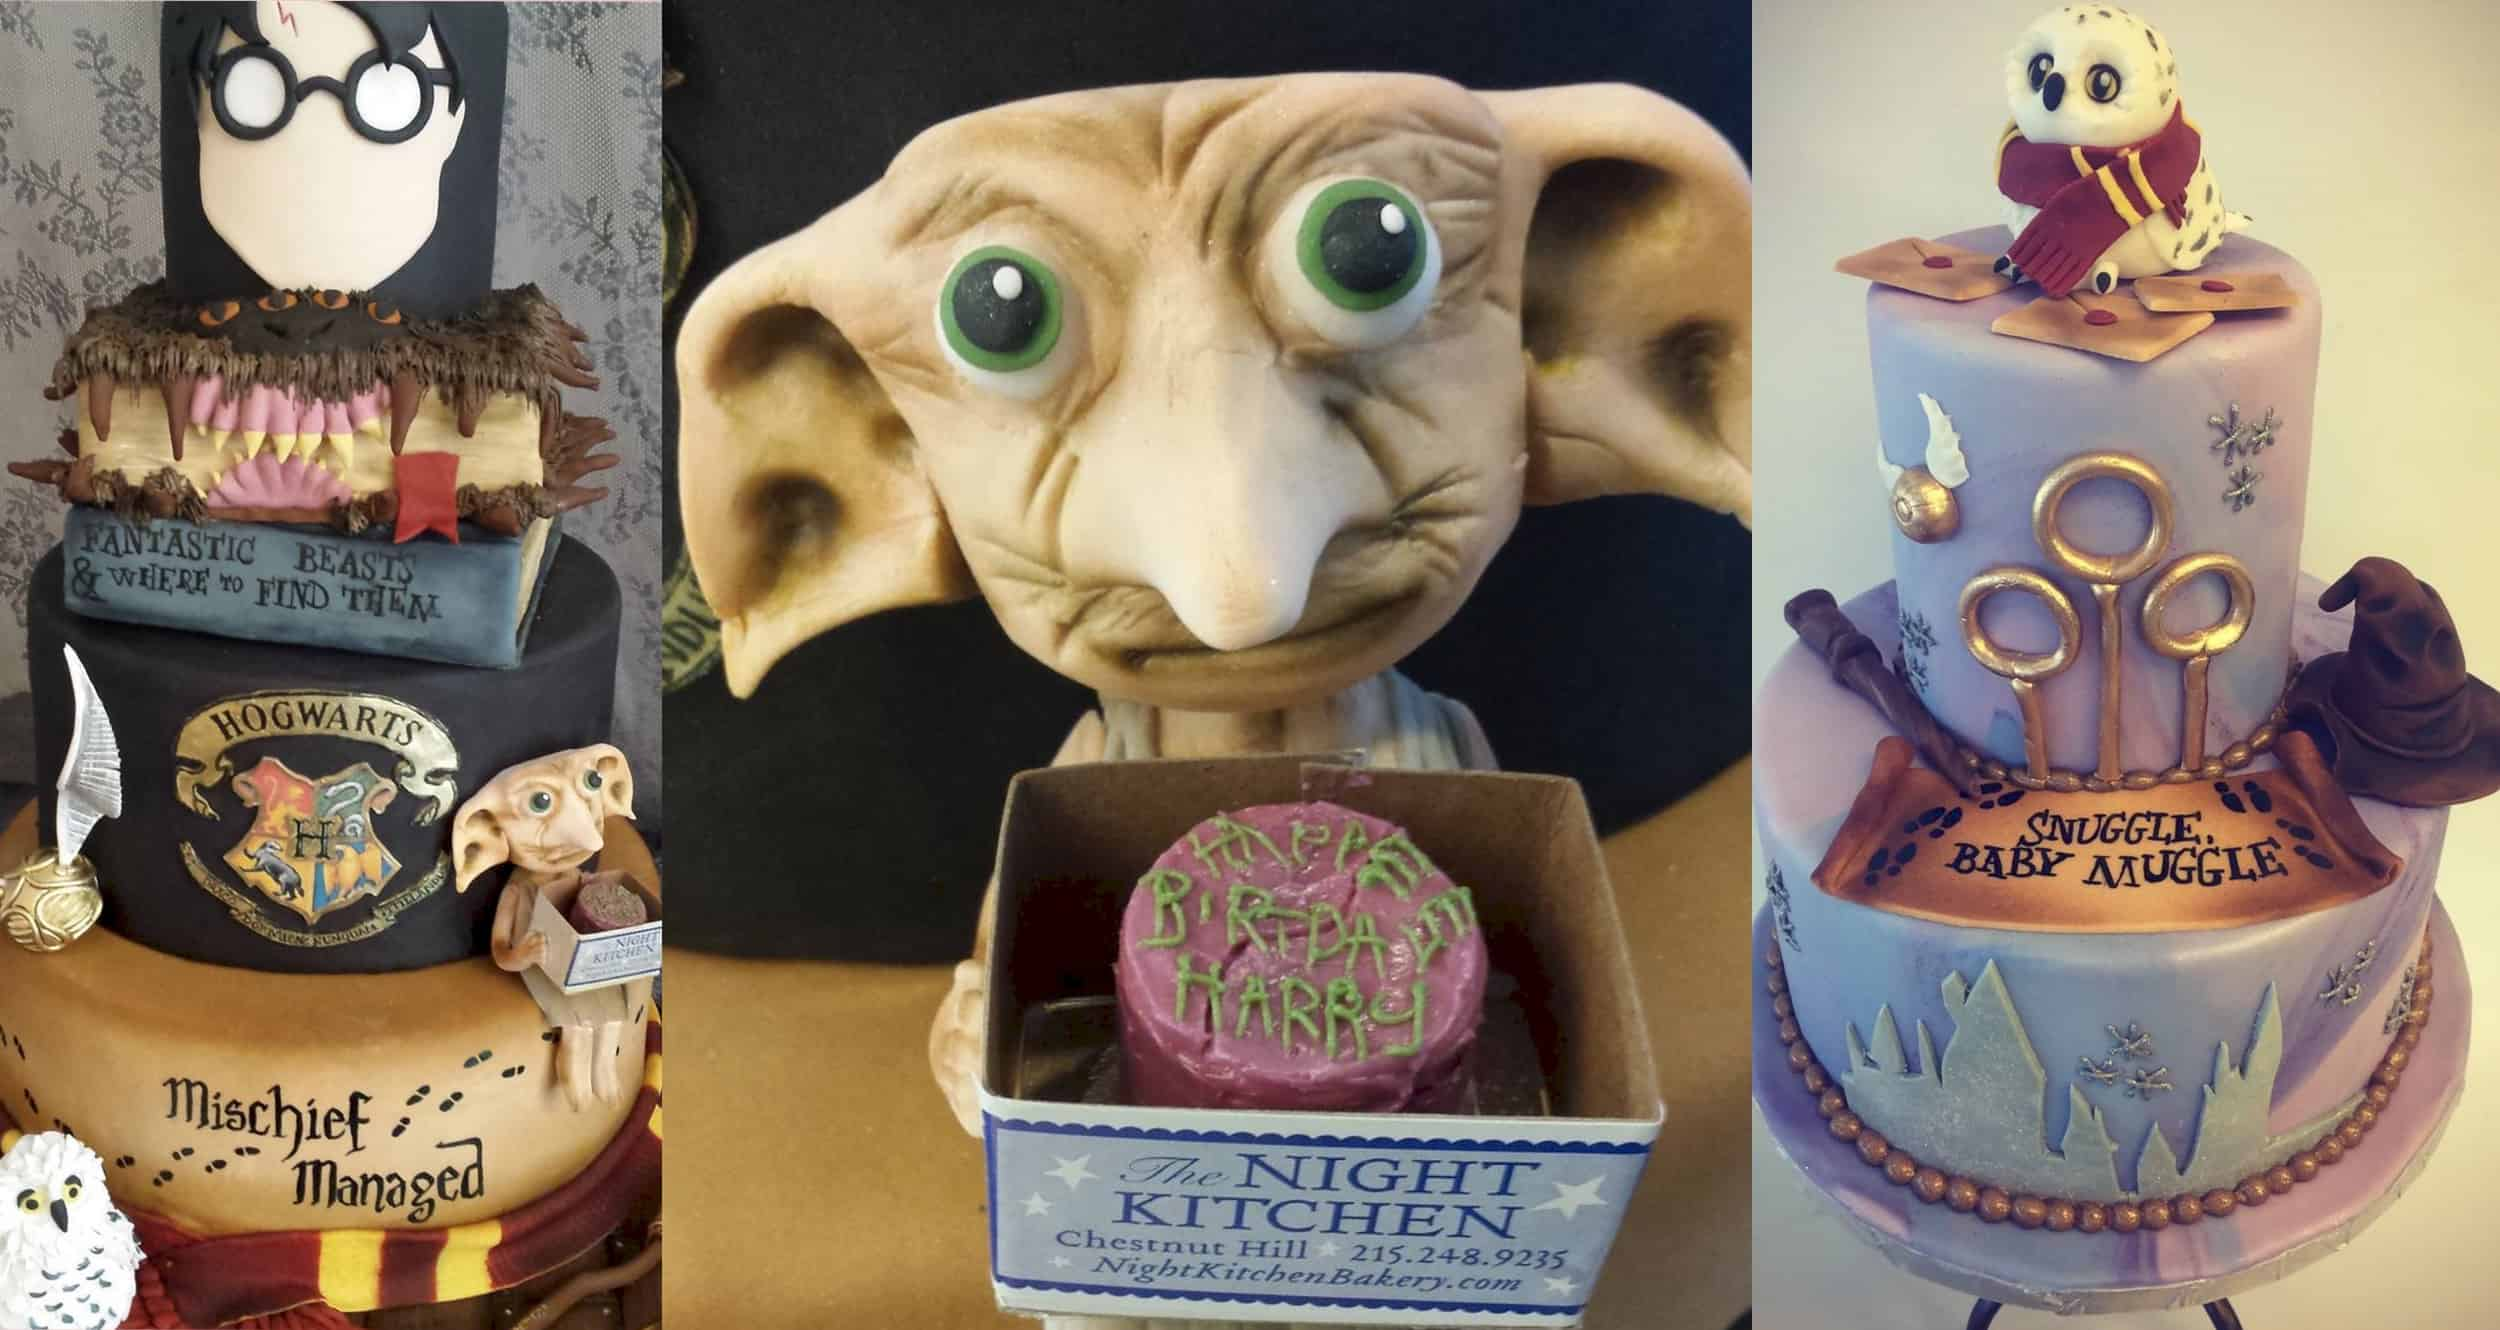 Night Kitchen Bakery makes Magical Cakes for Muggles